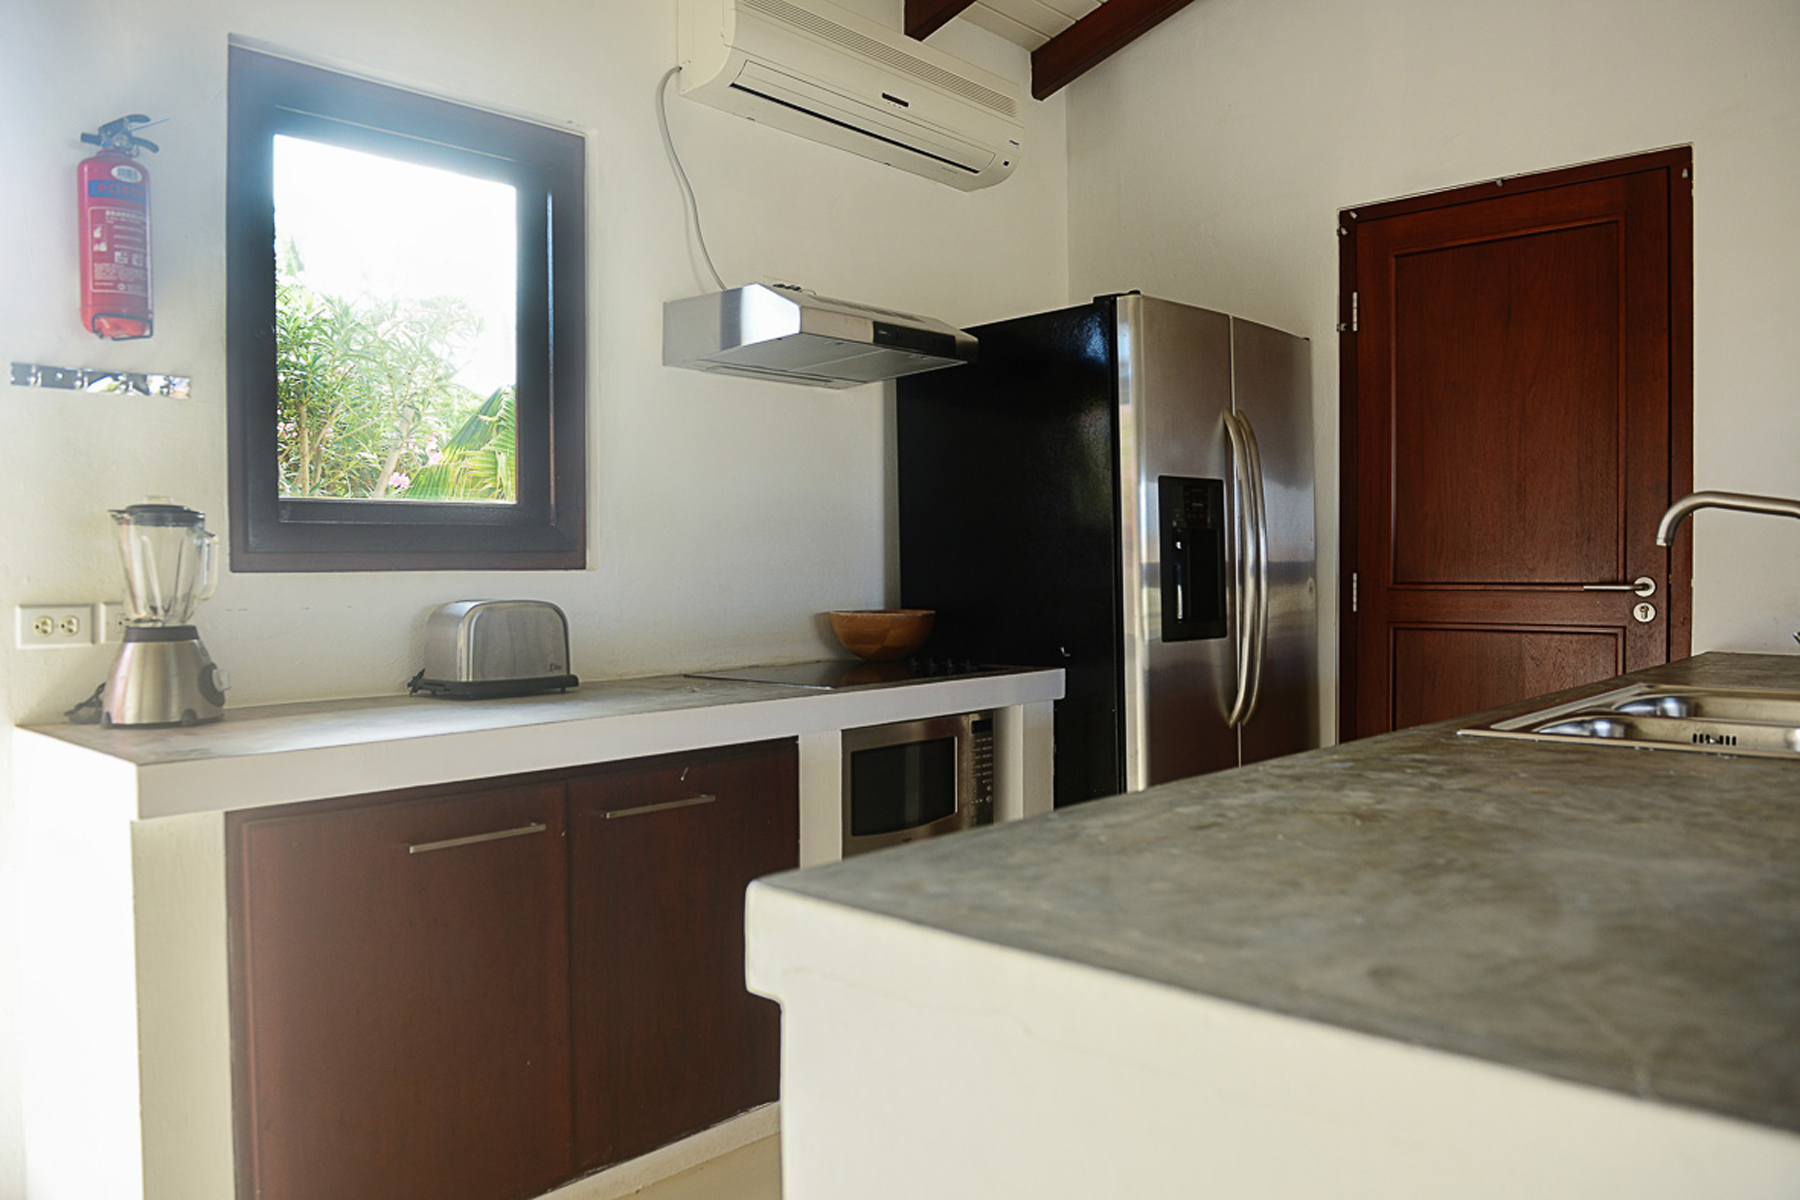 Additional photo for property listing at Waterlands Village Cottages 克拉伦代, 博内尔岛 博内尔